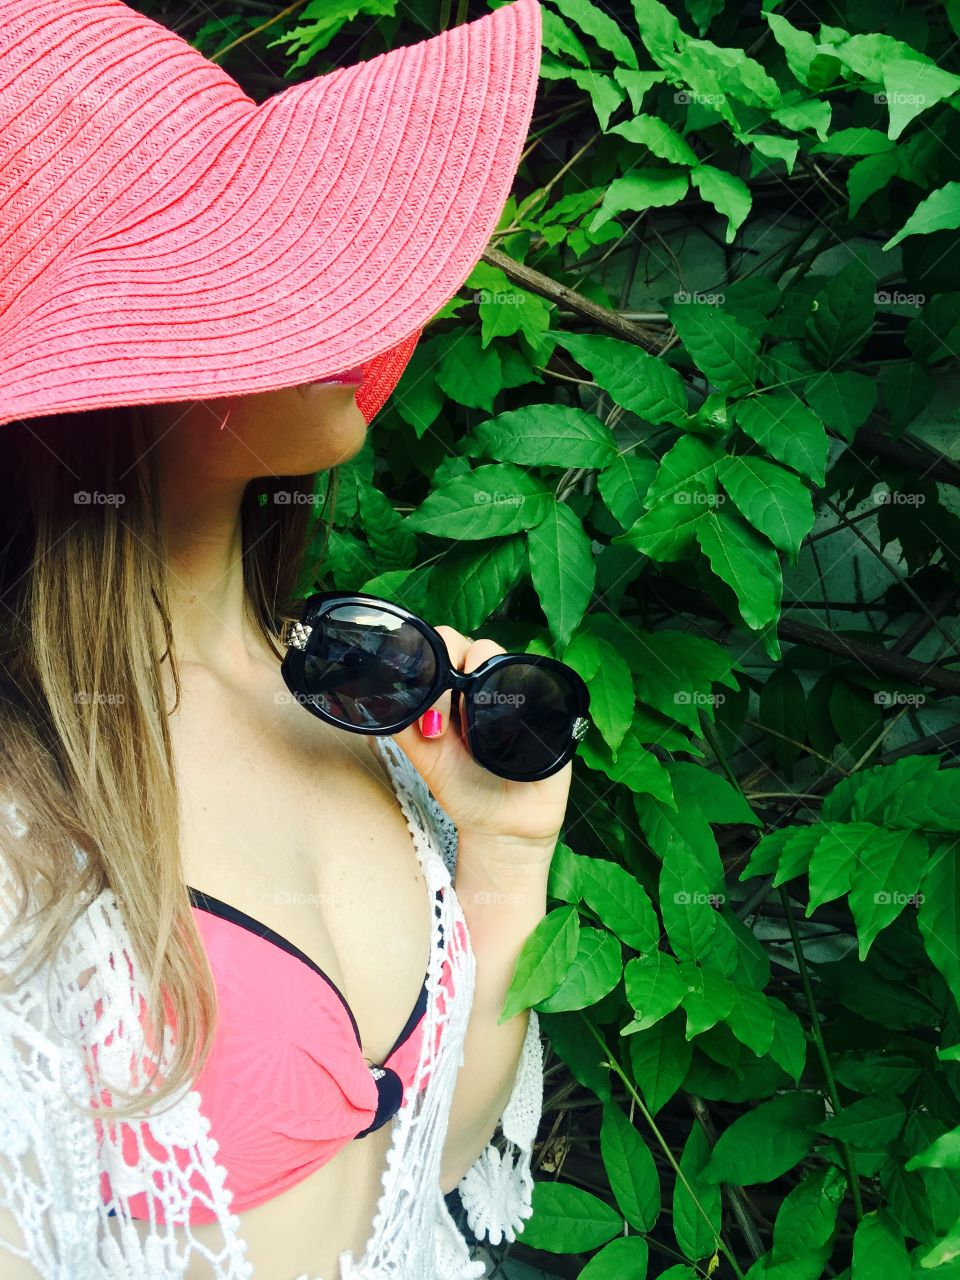 Selfie of woman with long dark blonde hair with black sunglasses in her hand standing against background made of leaves